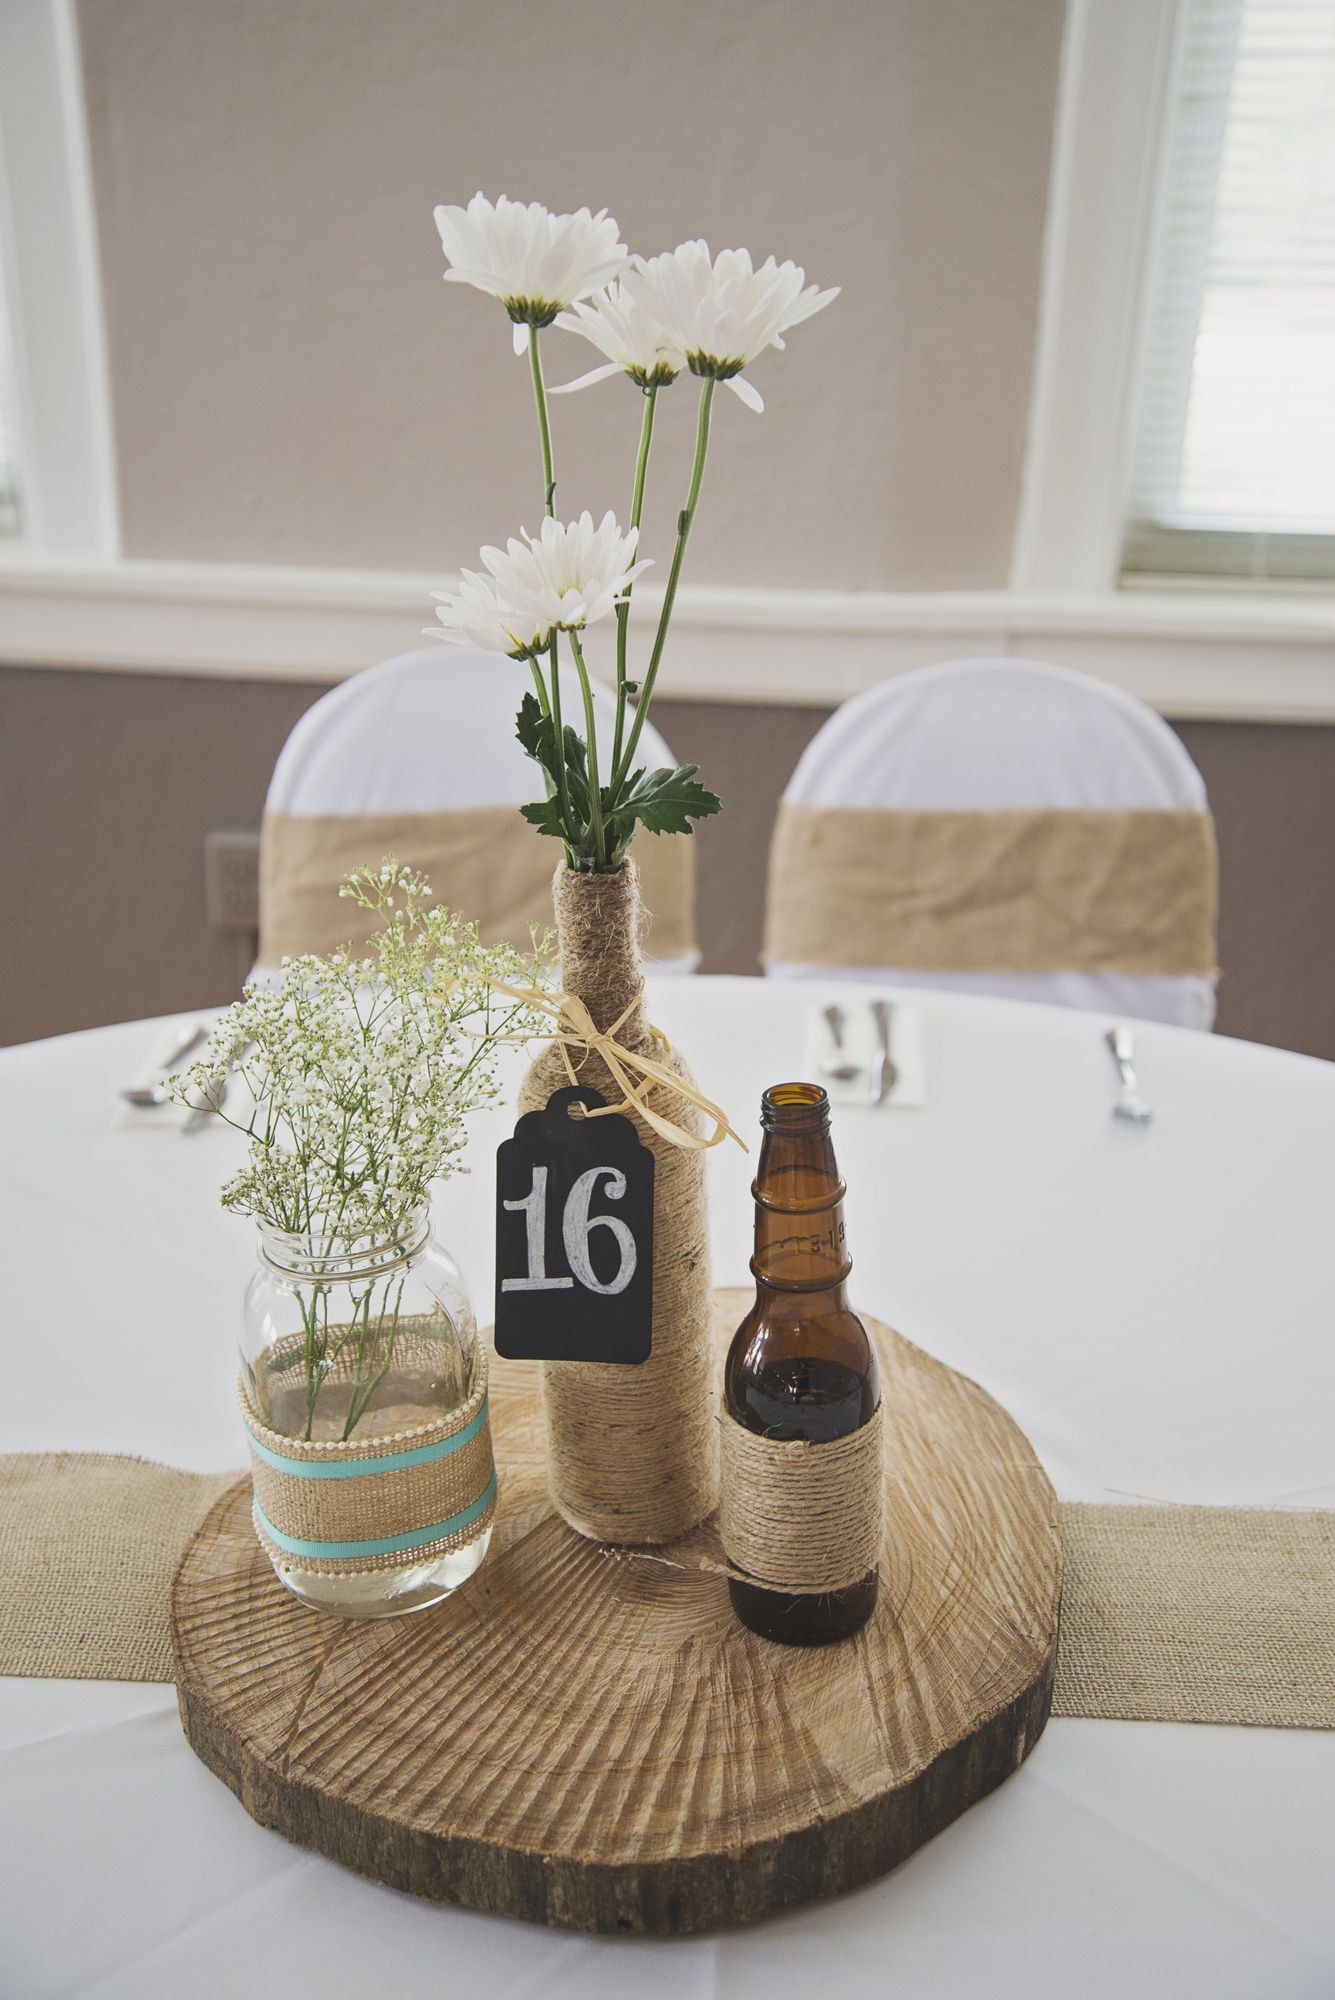 Rustic DIY Tree Stump Centerpieces with Twine-Wrapped Beer Bottles,  Daisies, and Baby's